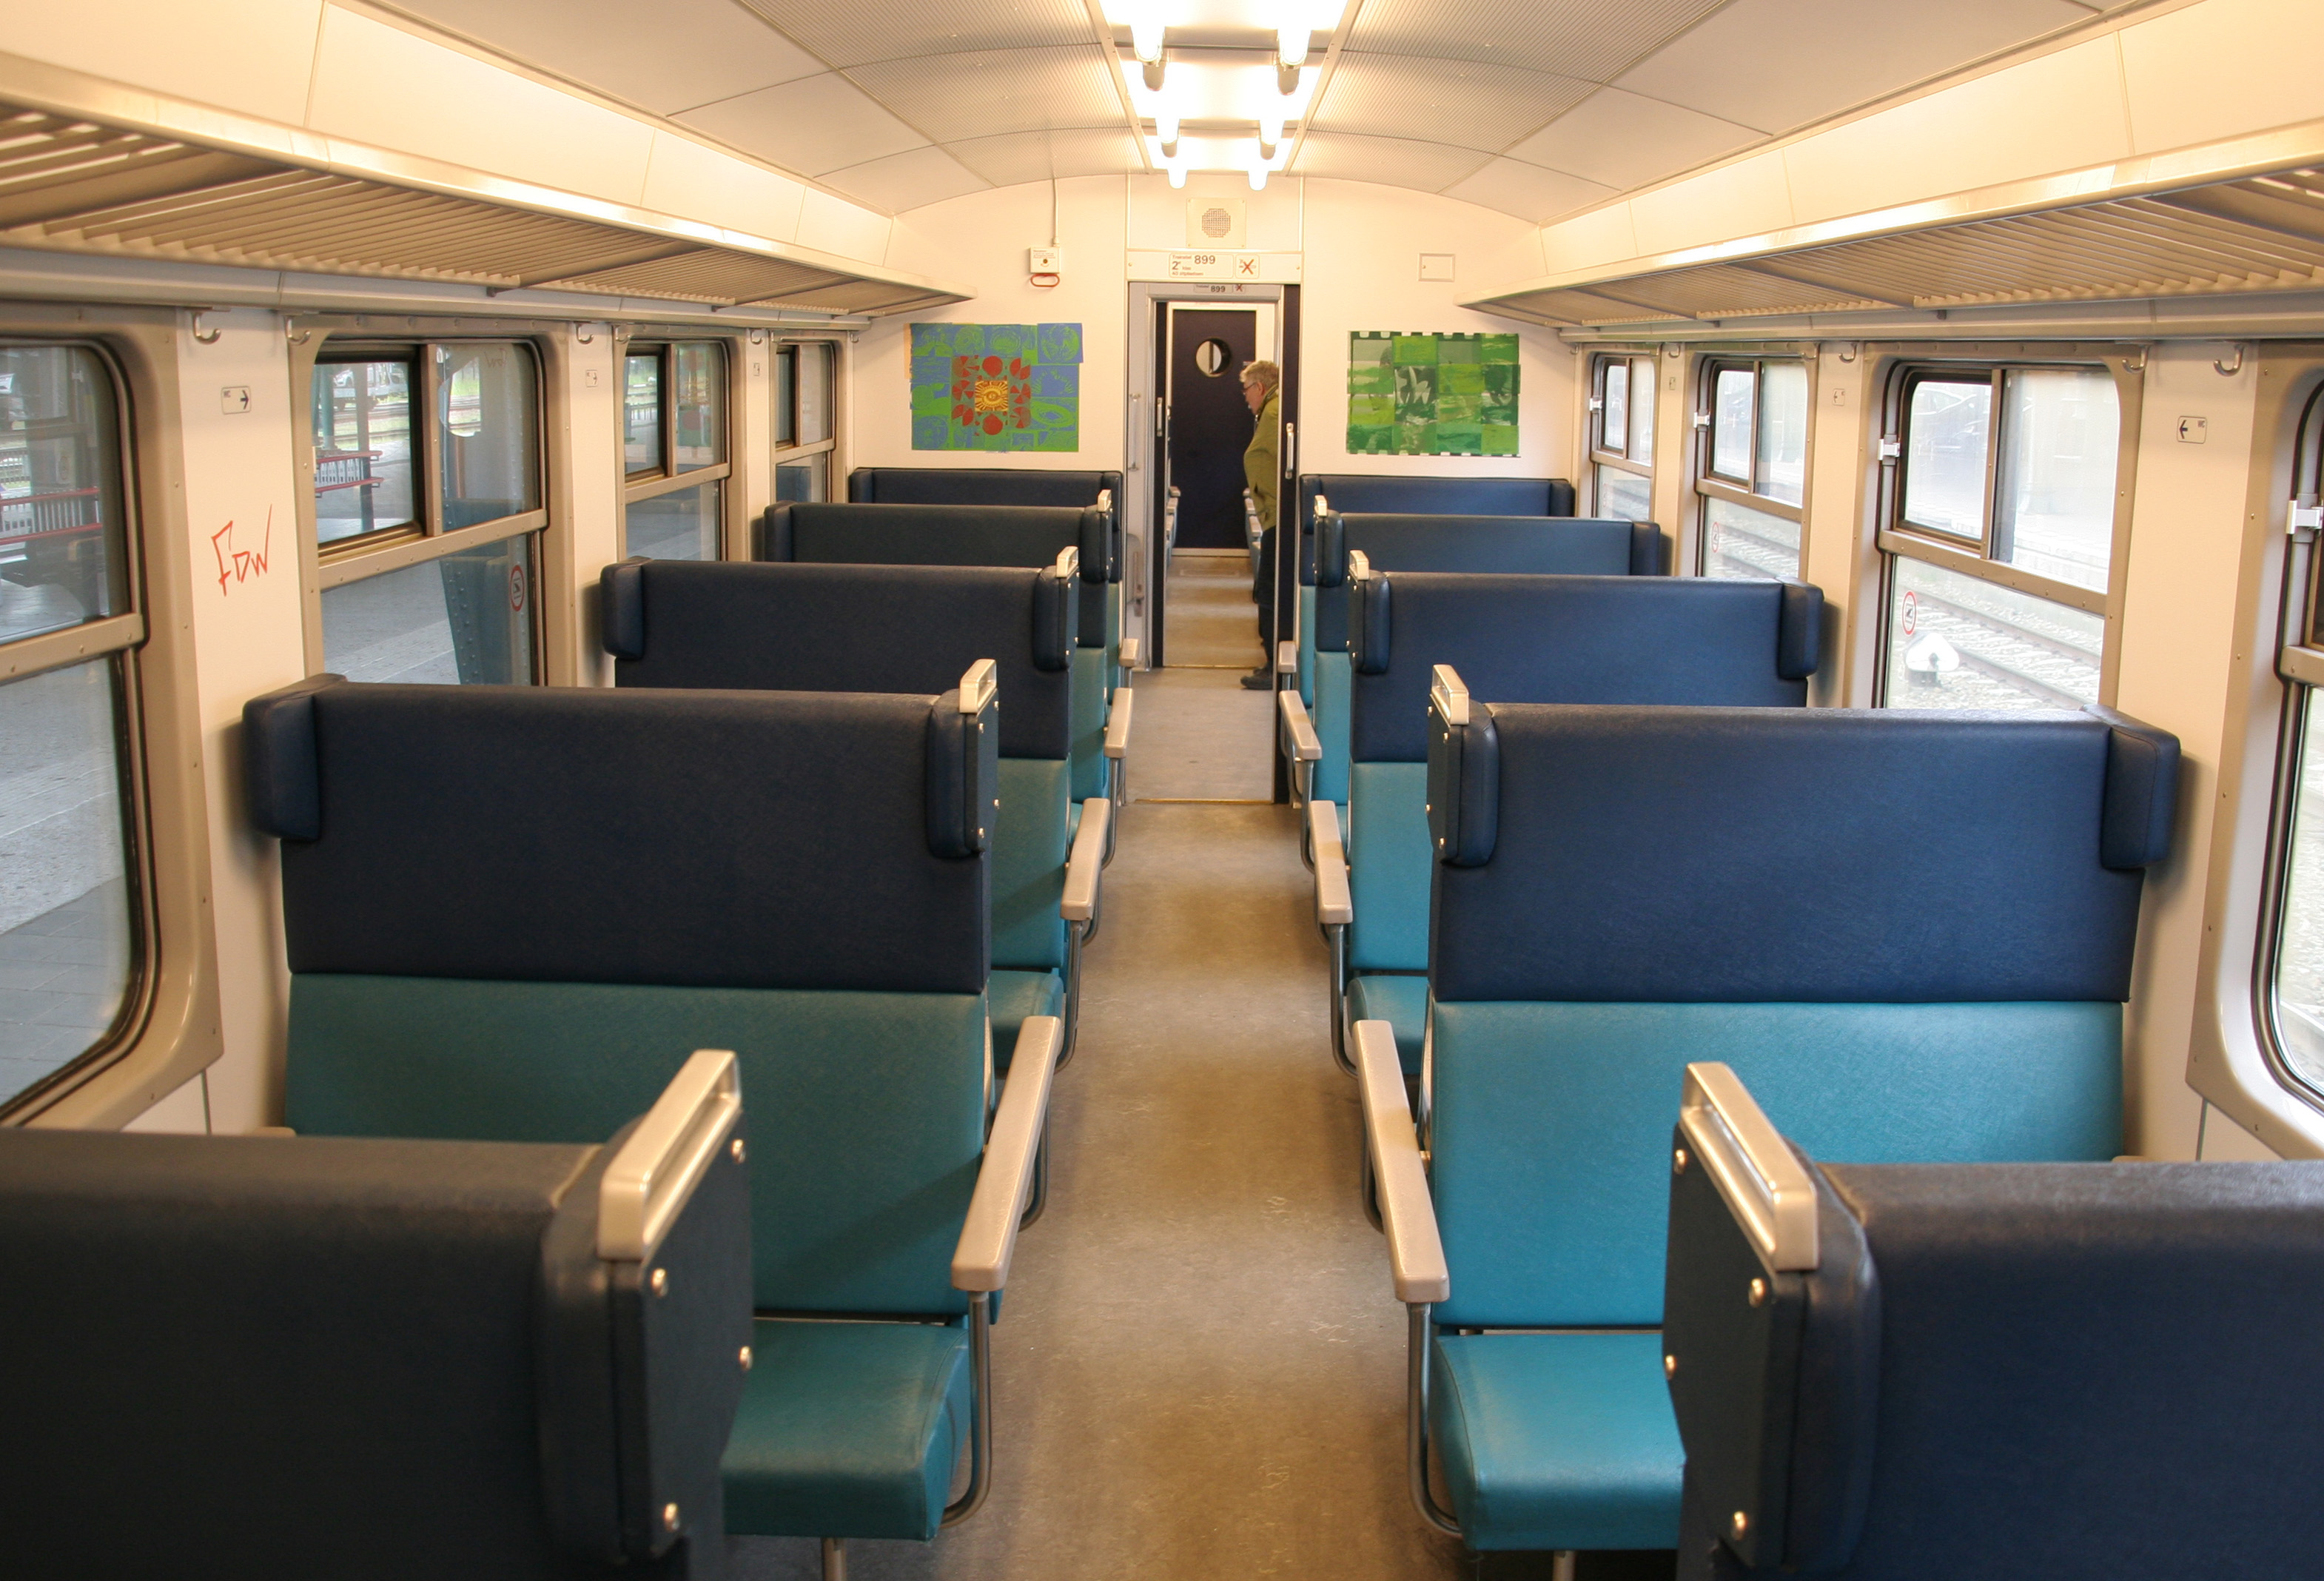 Interieur Trein File Interieur Plan V Jpg Wikimedia Commons